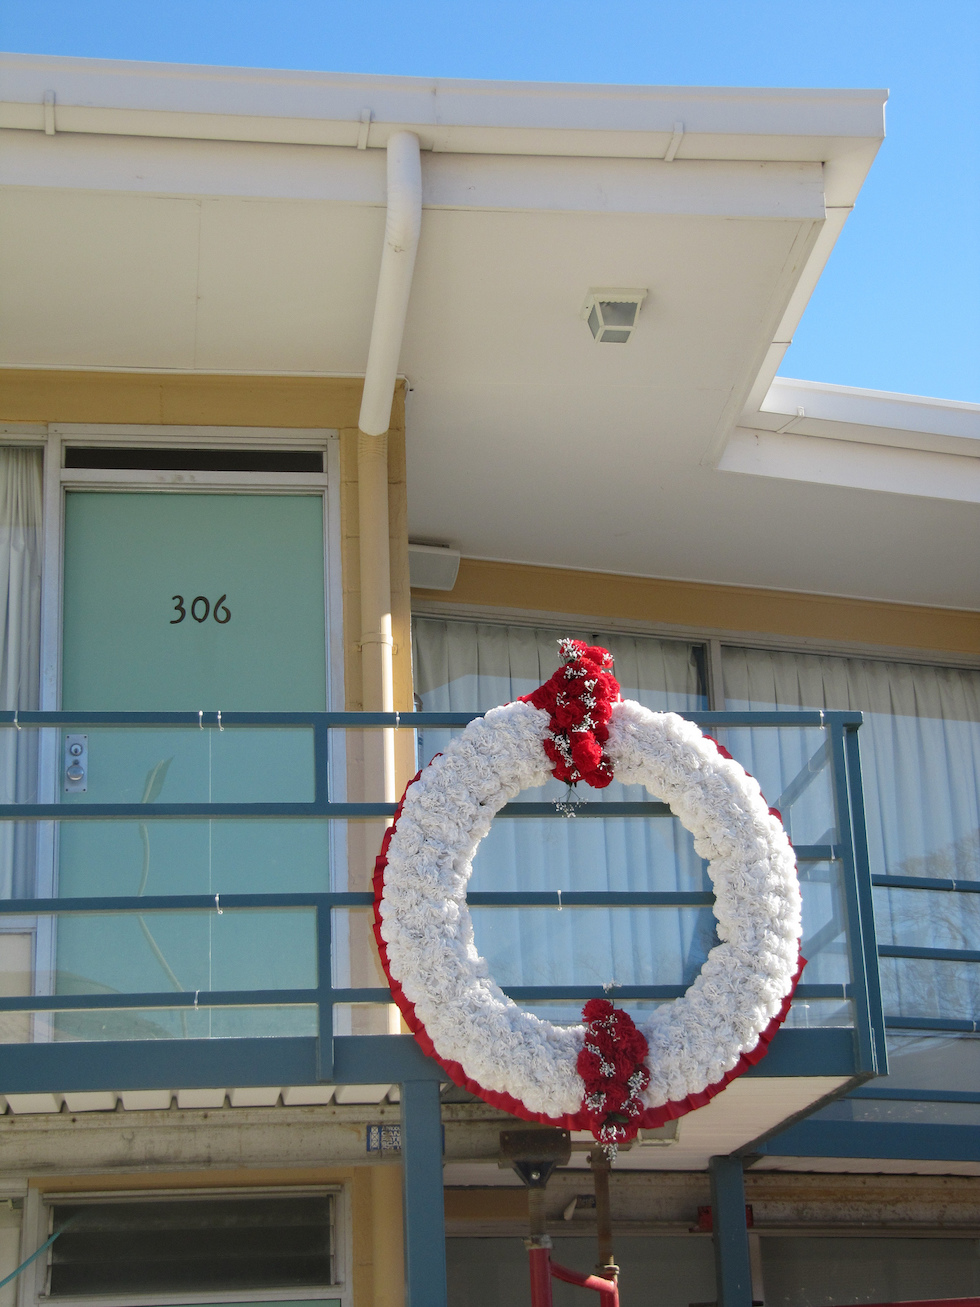 The spot where MLK was shot and killed. Photo Credit: Mr. Littlehand/ Flickr (CC By 2.0)